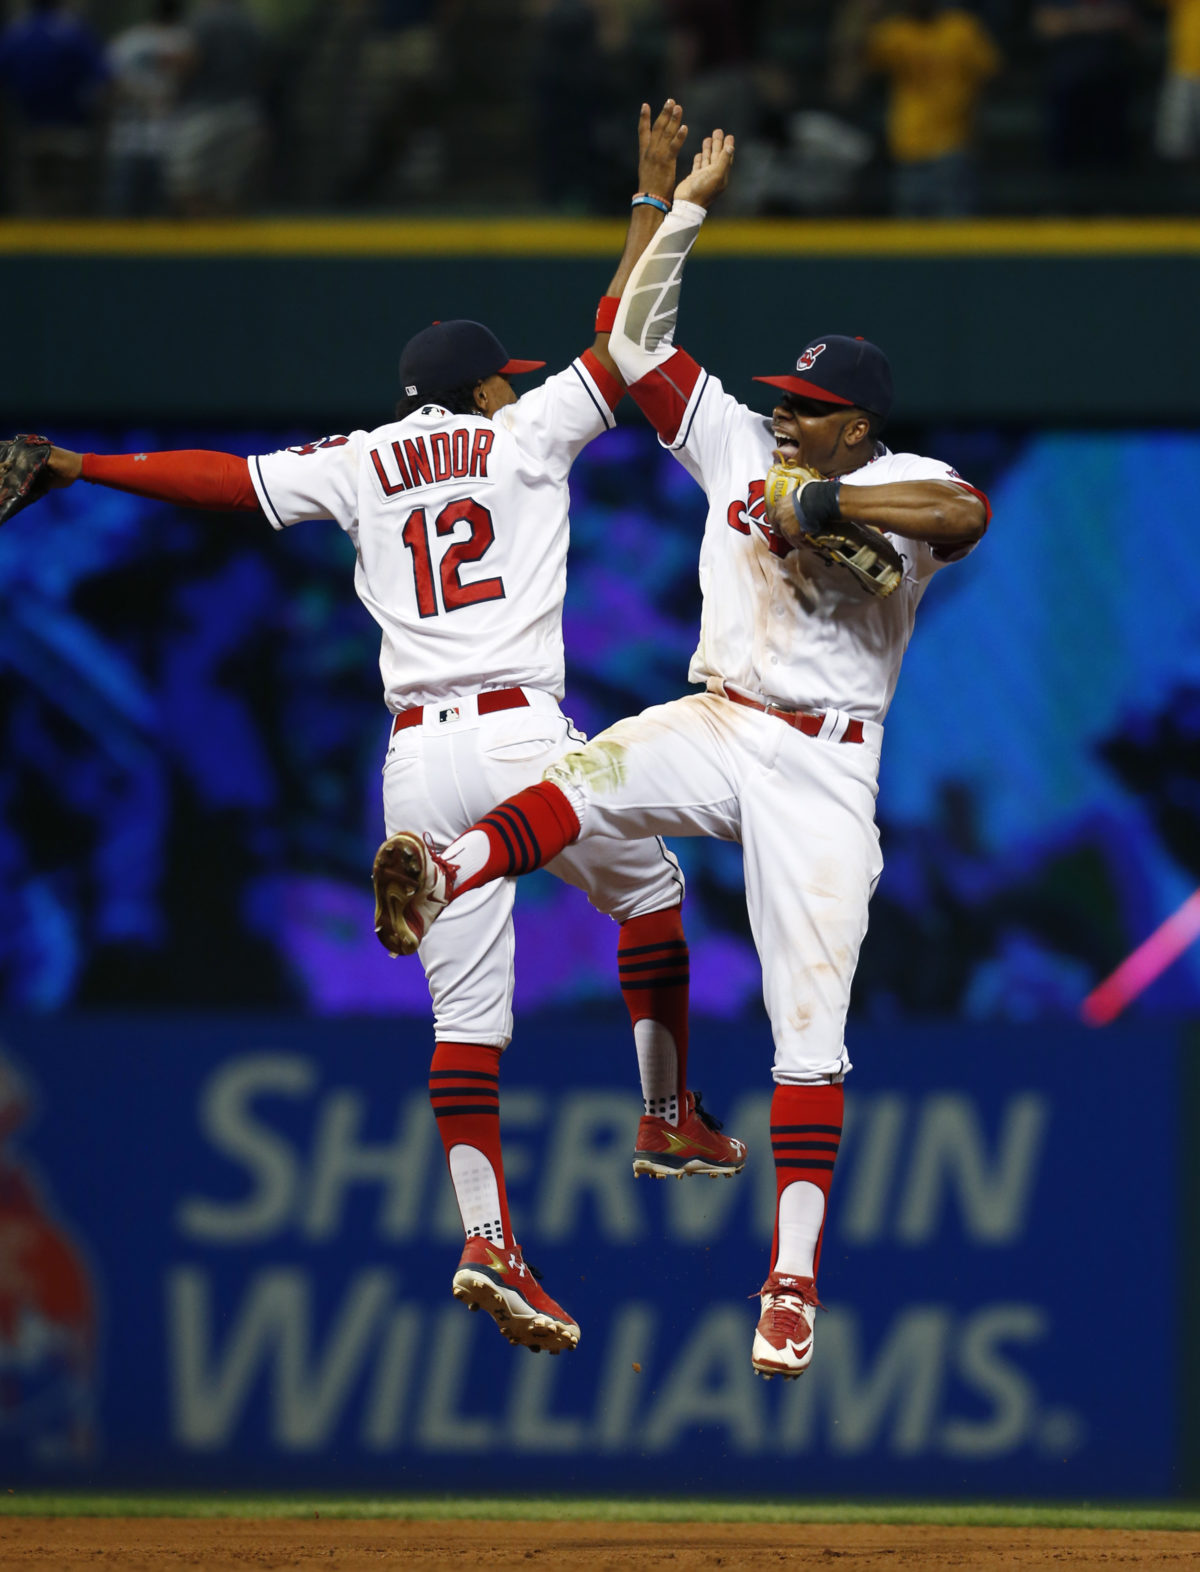 Tomlin struggles, Indians hand Twins 12th straight loss, 5-4